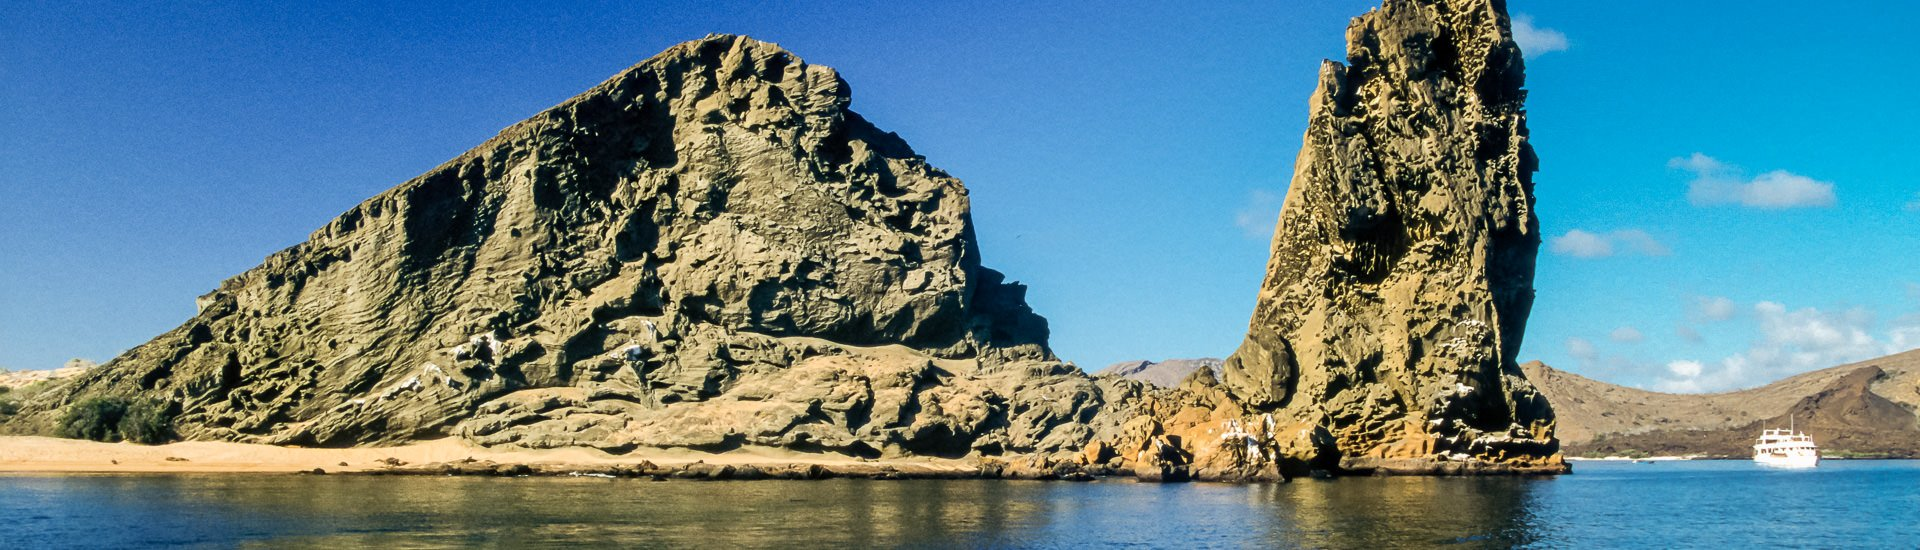 Pinnacle Rock (� Mathias Conze, Macopi / Cham�leon)